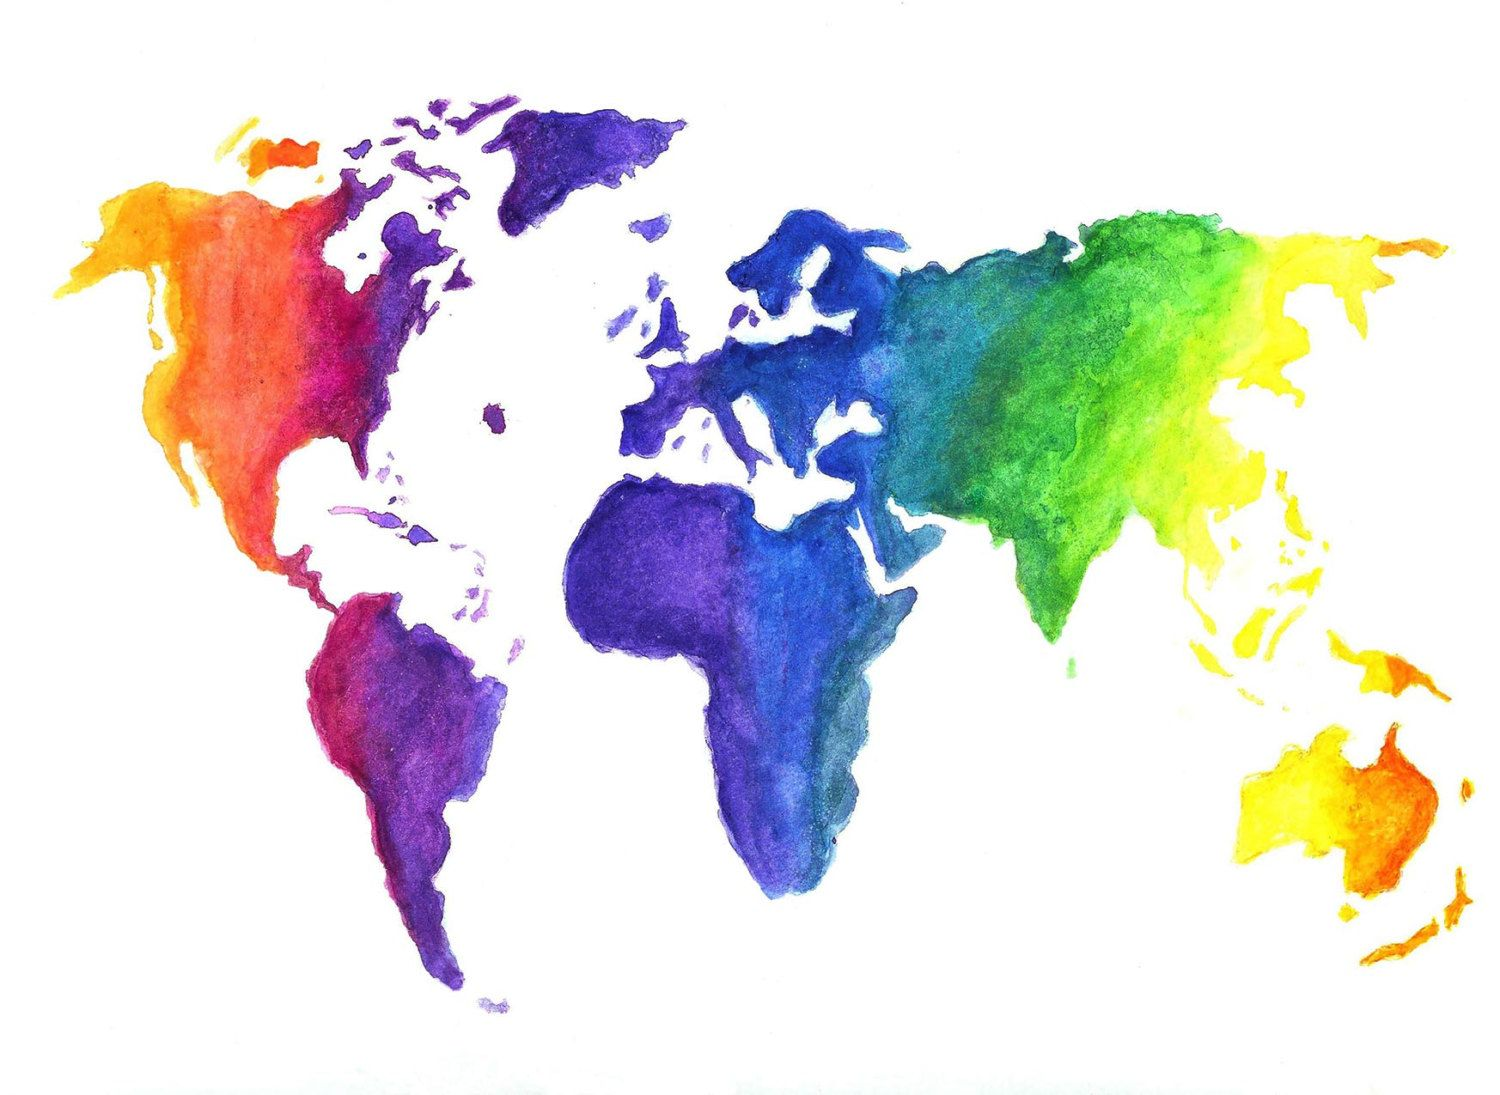 Watercolor World Map Illustration Earth in Rainbow Colors by Zoia S